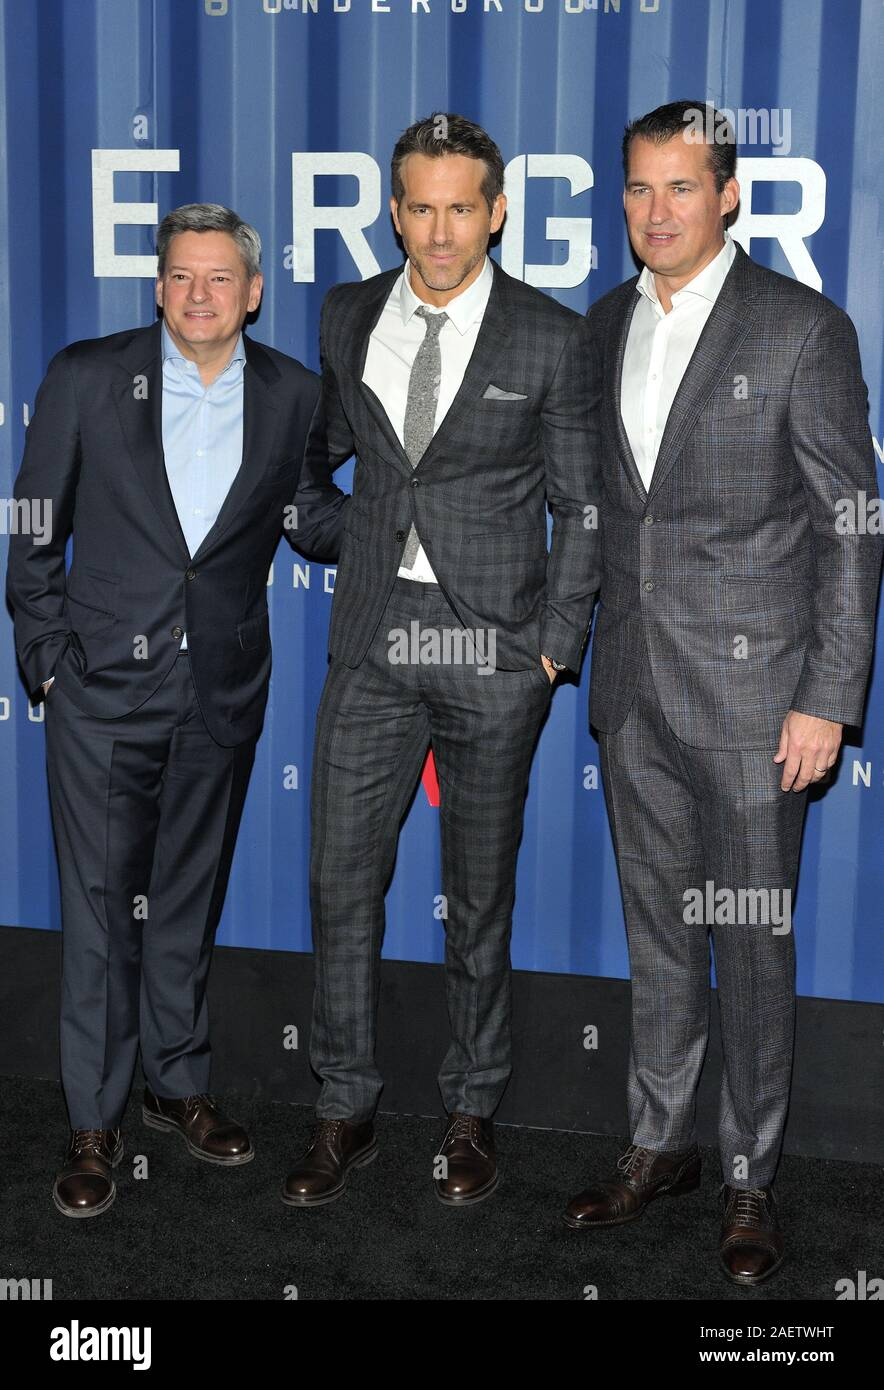 L-R: Netflix exec Ted Sarandos, actor Ryan Reynolds and Netflix exec Scott Stuber attend the NY premiere of 6 Underground at The Shed at Hudson Yards in New York, NY on December 10, 2019.  (Photo by Stephen Smith/SIPA USA) Stock Photo